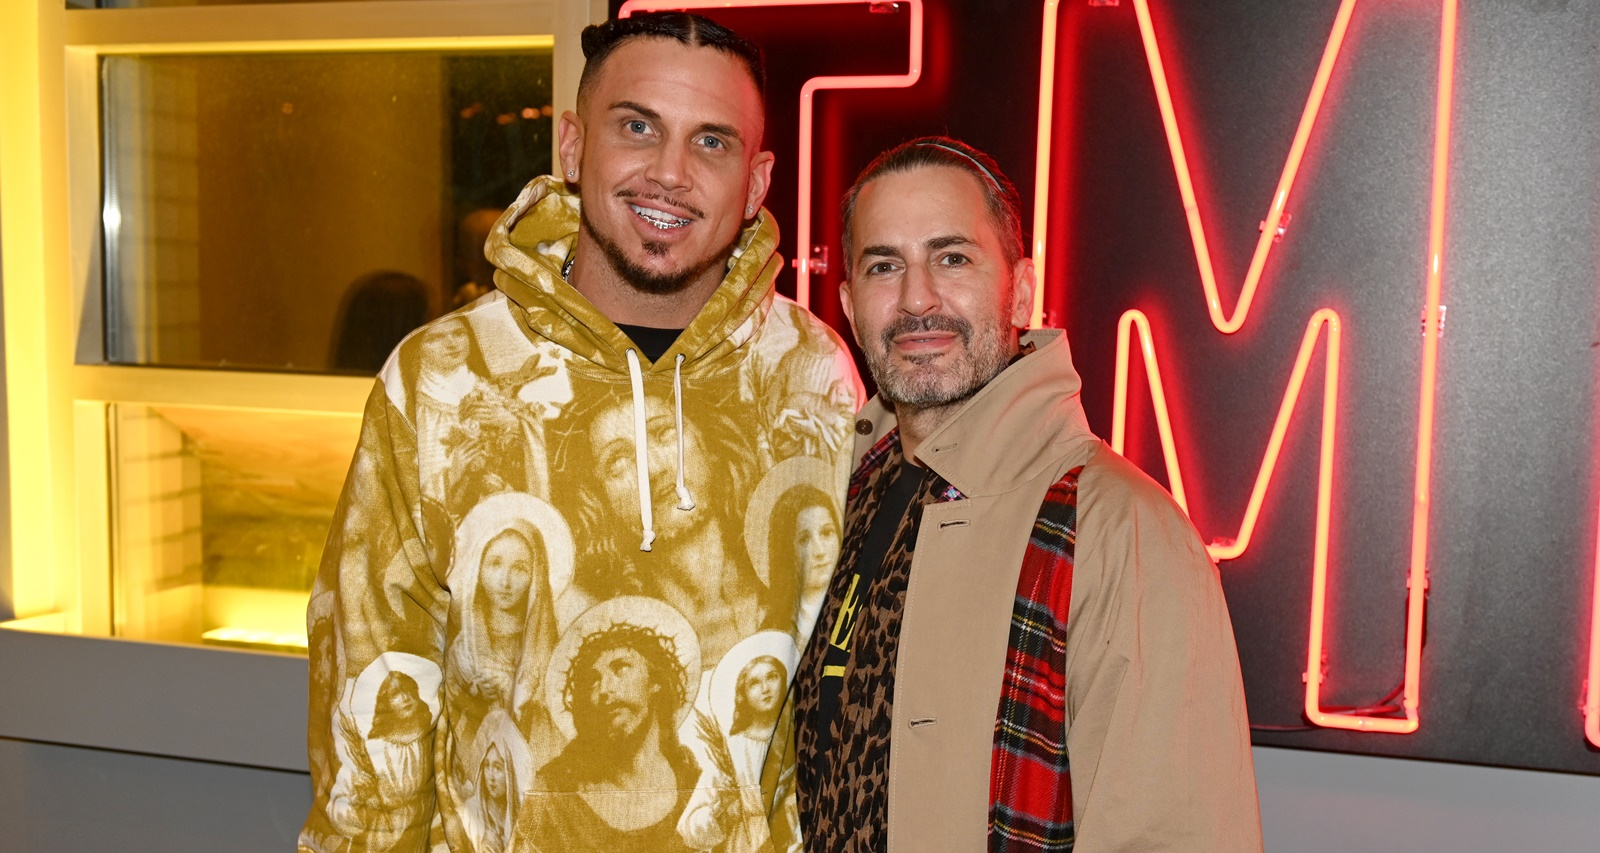 Charly Defrancesco Wiki: Facts about Marc Jacobs' Husband